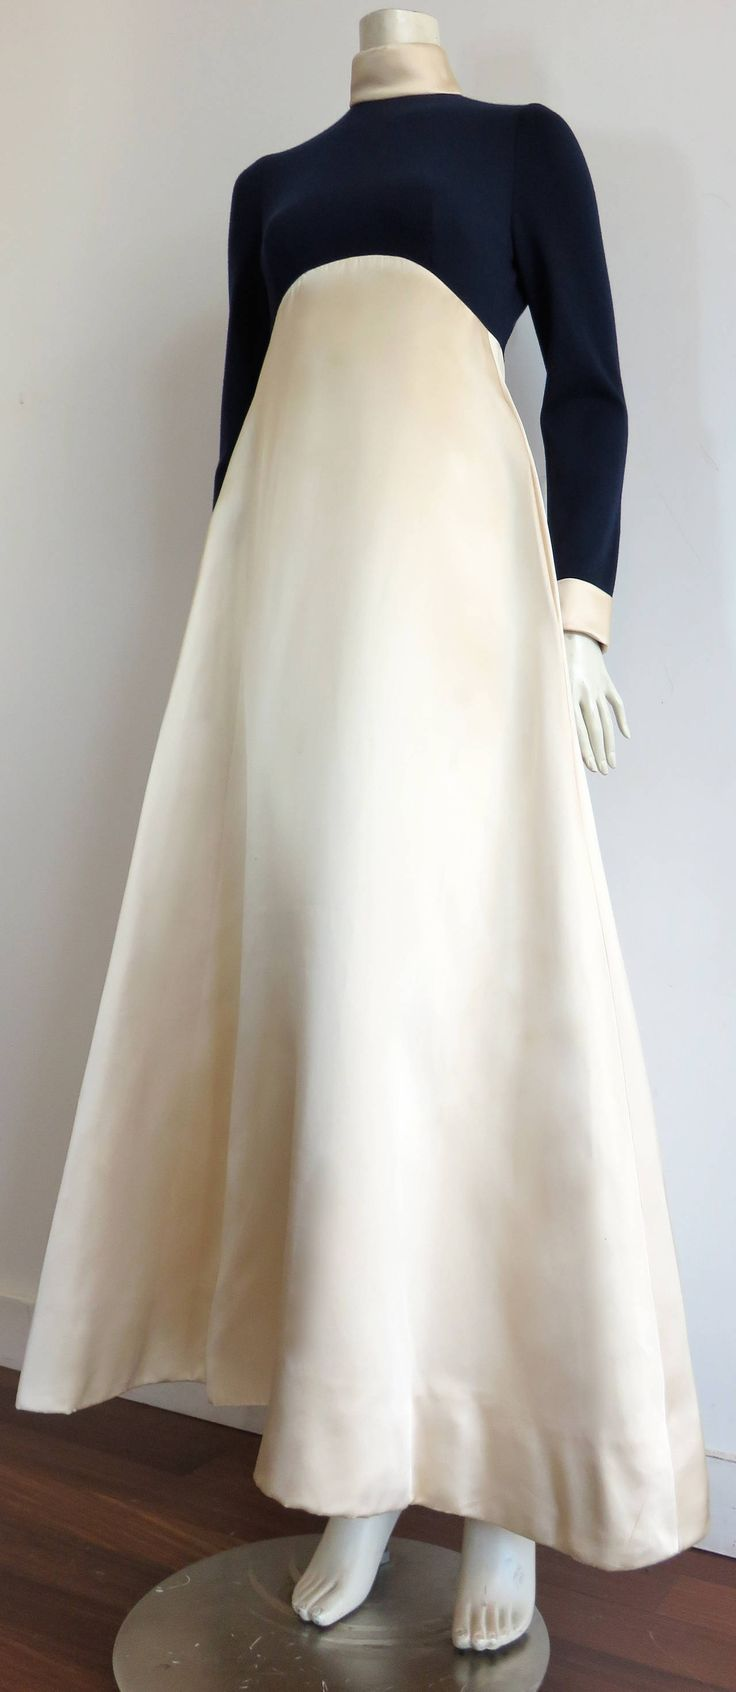 1960's GEOFFREY BEENE Satin & jersey evening gown dress | From a collection of rare vintage evening dresses at https://www.1stdibs.com/fashion/clothing/evening-dresses/